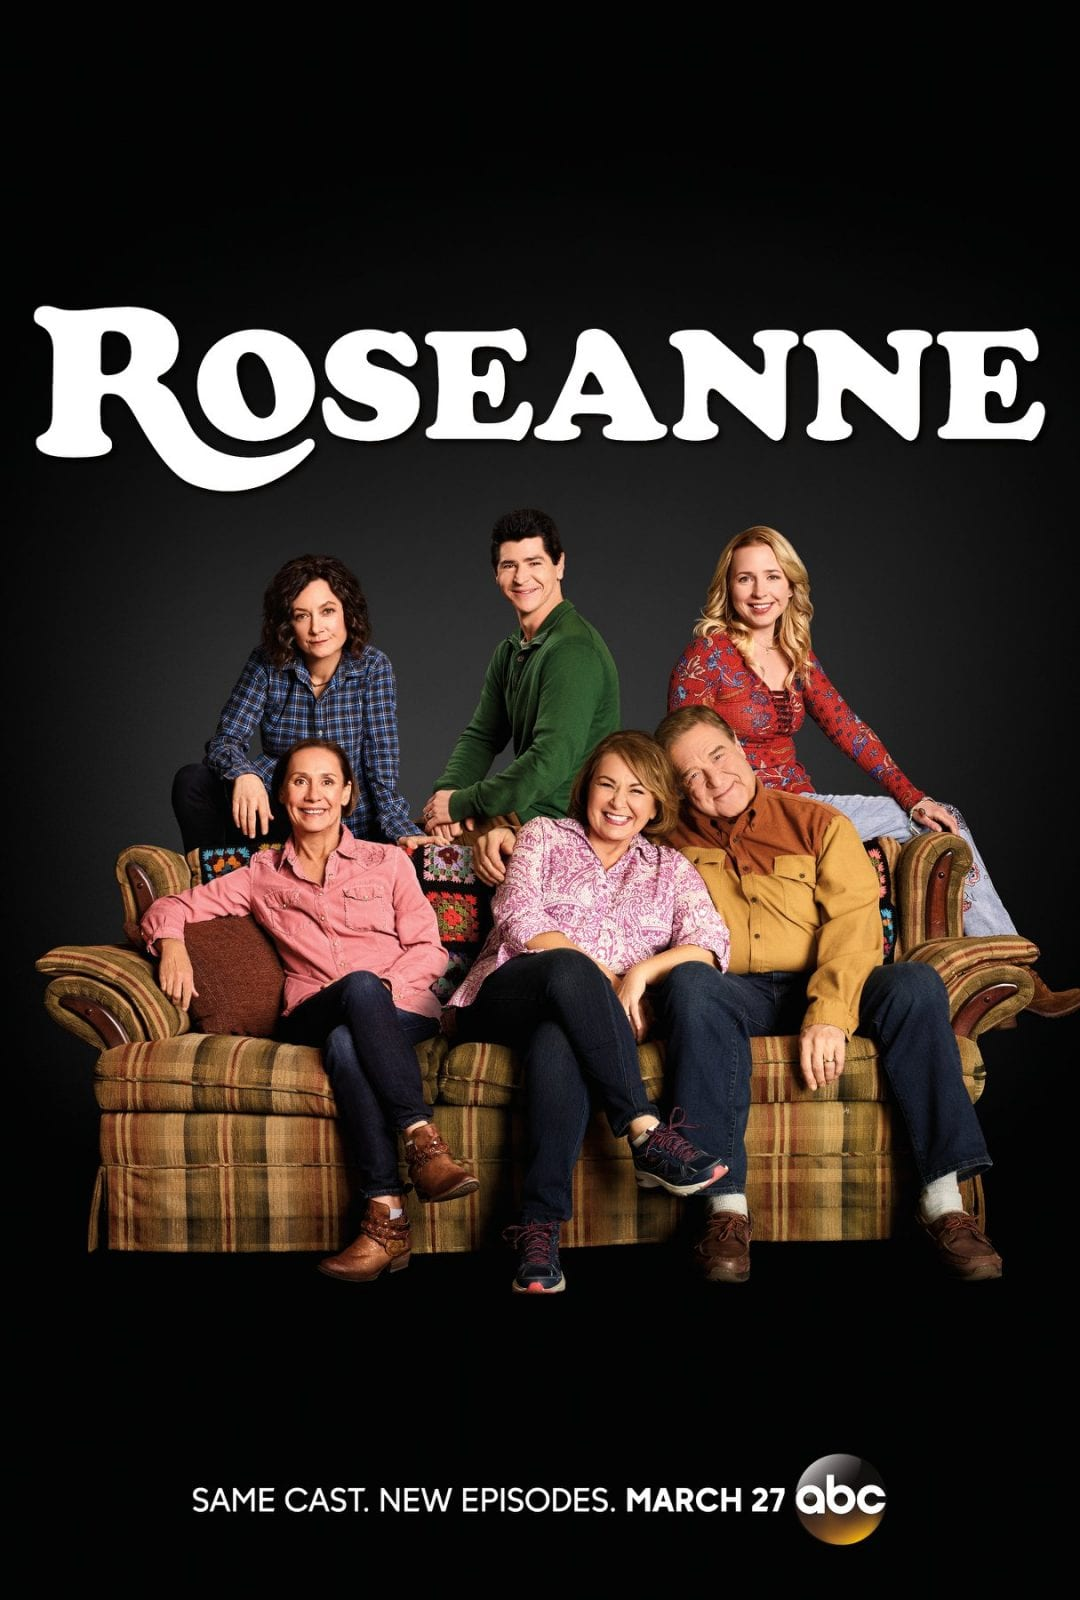 5 Highlights From Interviewing the Cast of Roseanne #ABCTVEvent